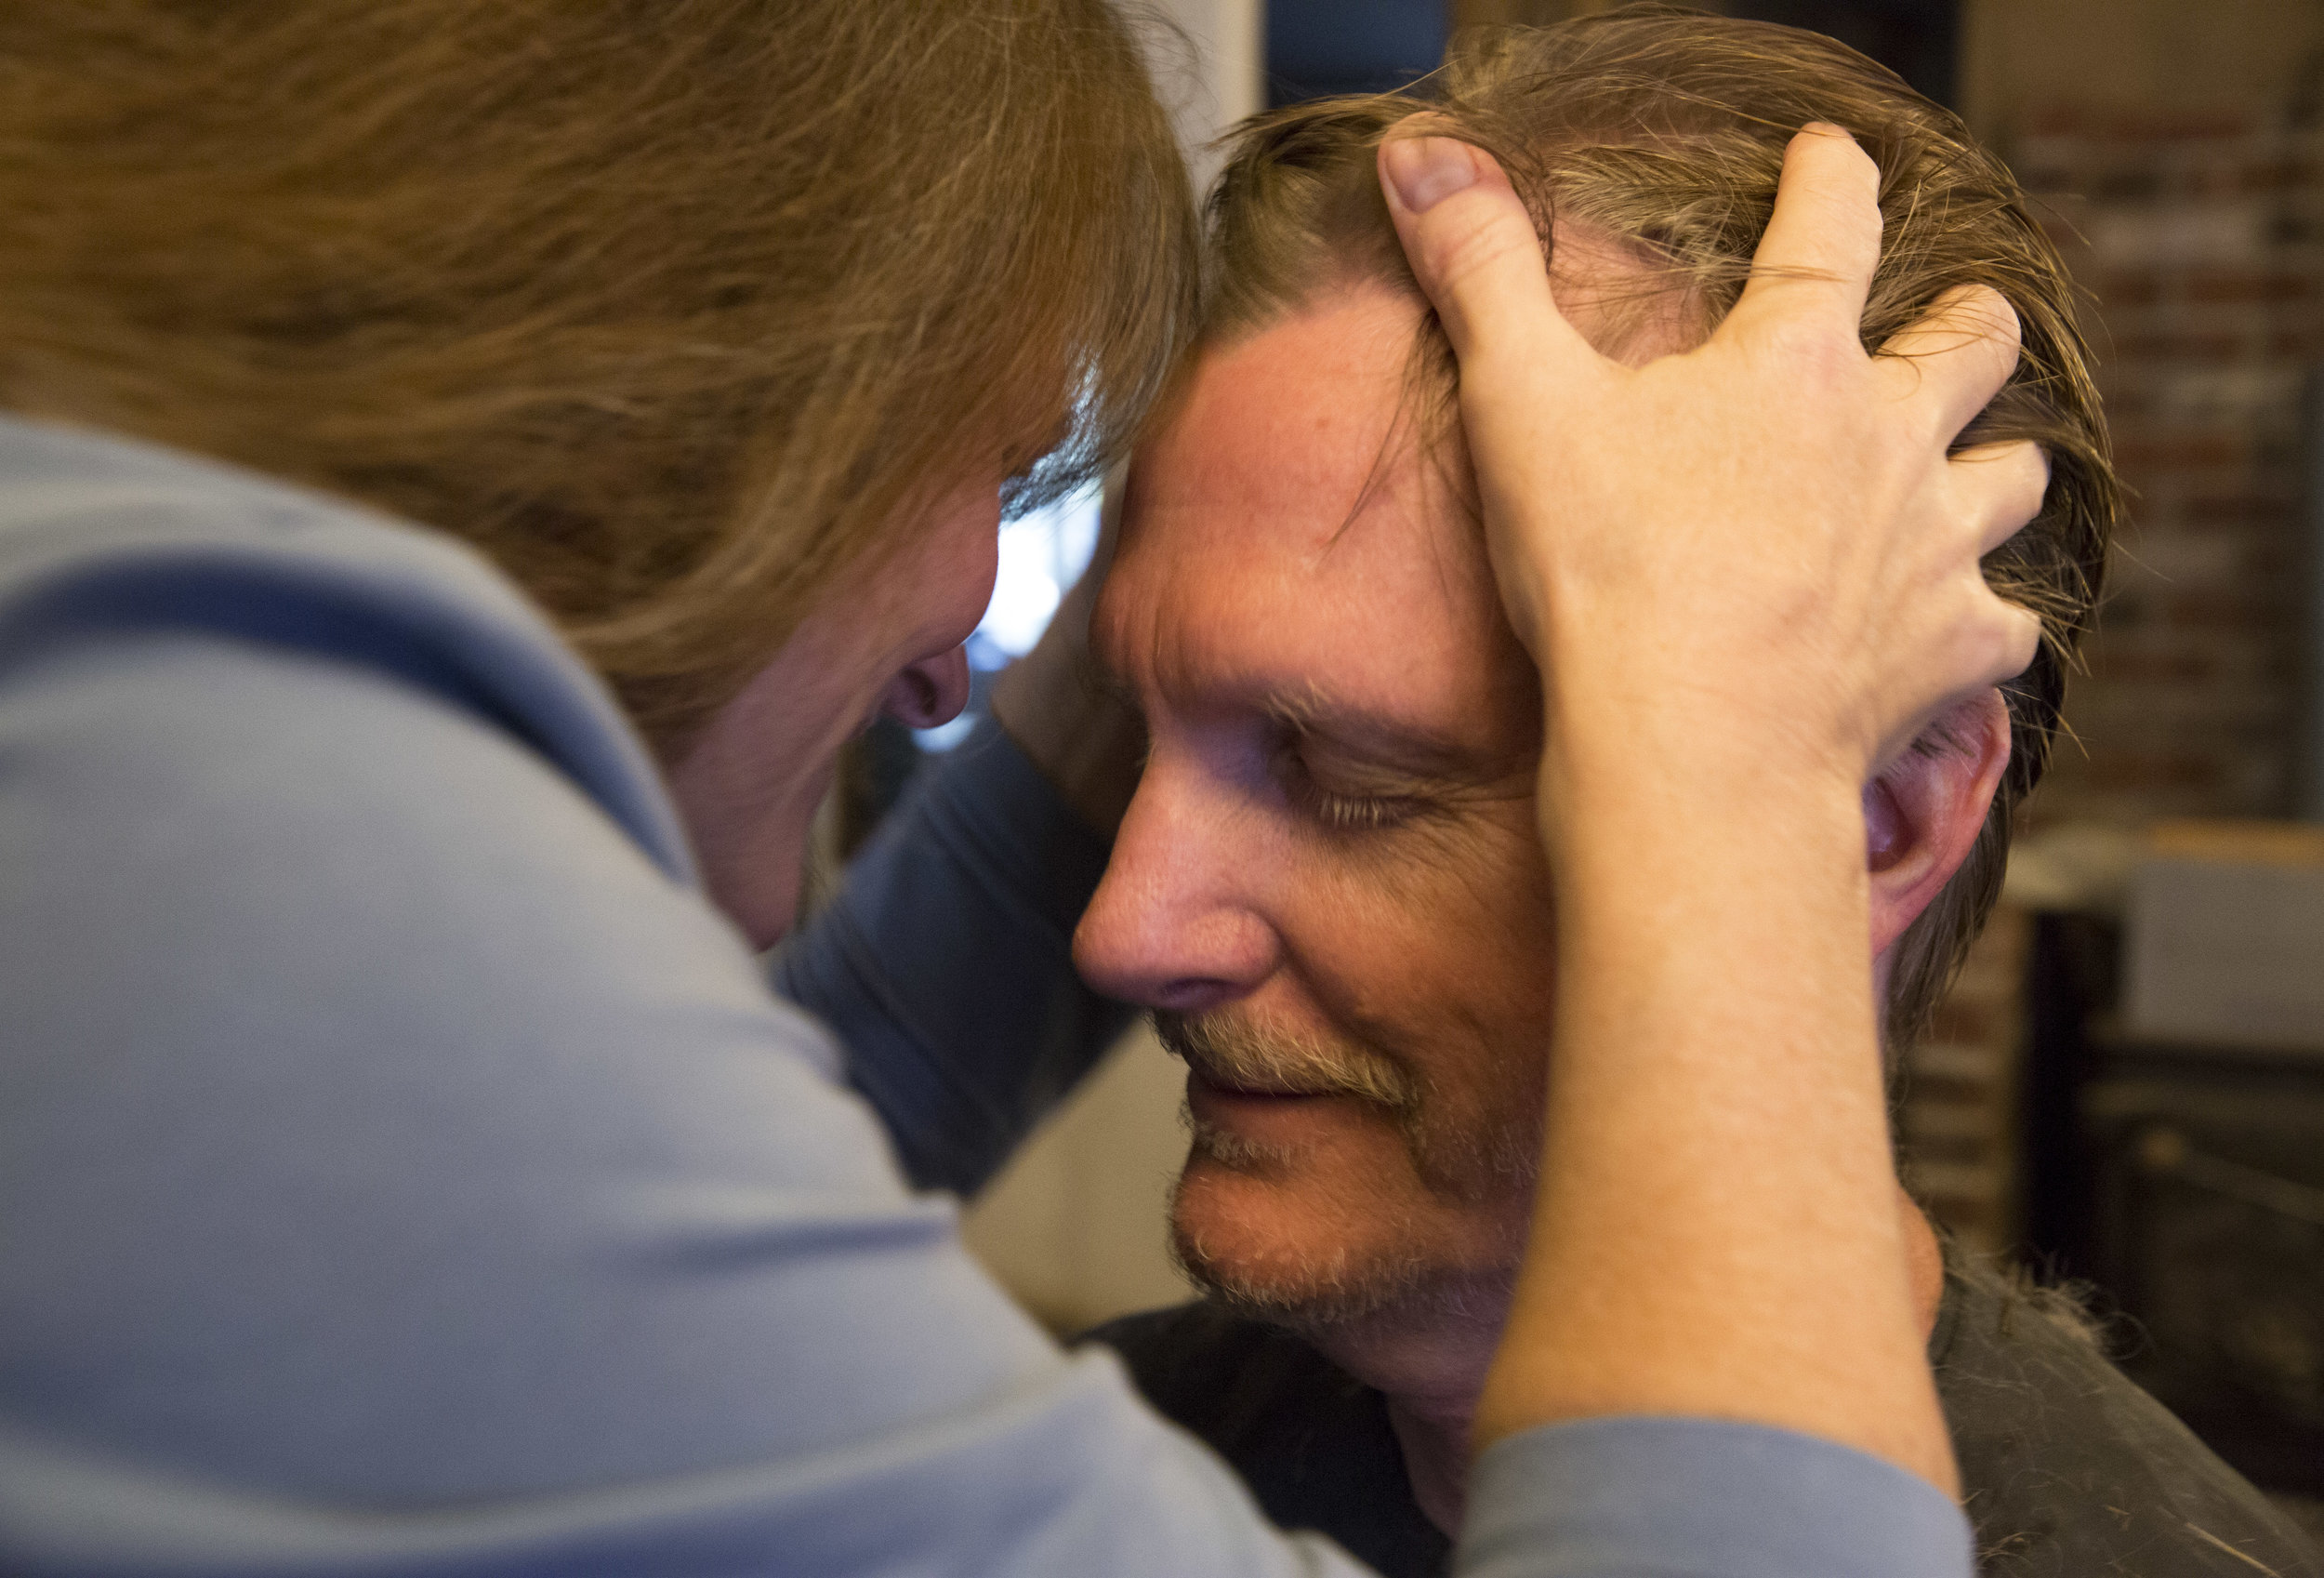 Lorian Moore and her husband, Rex Rohrer, share an intimate moment while she massages his forehead before he leaves for work.